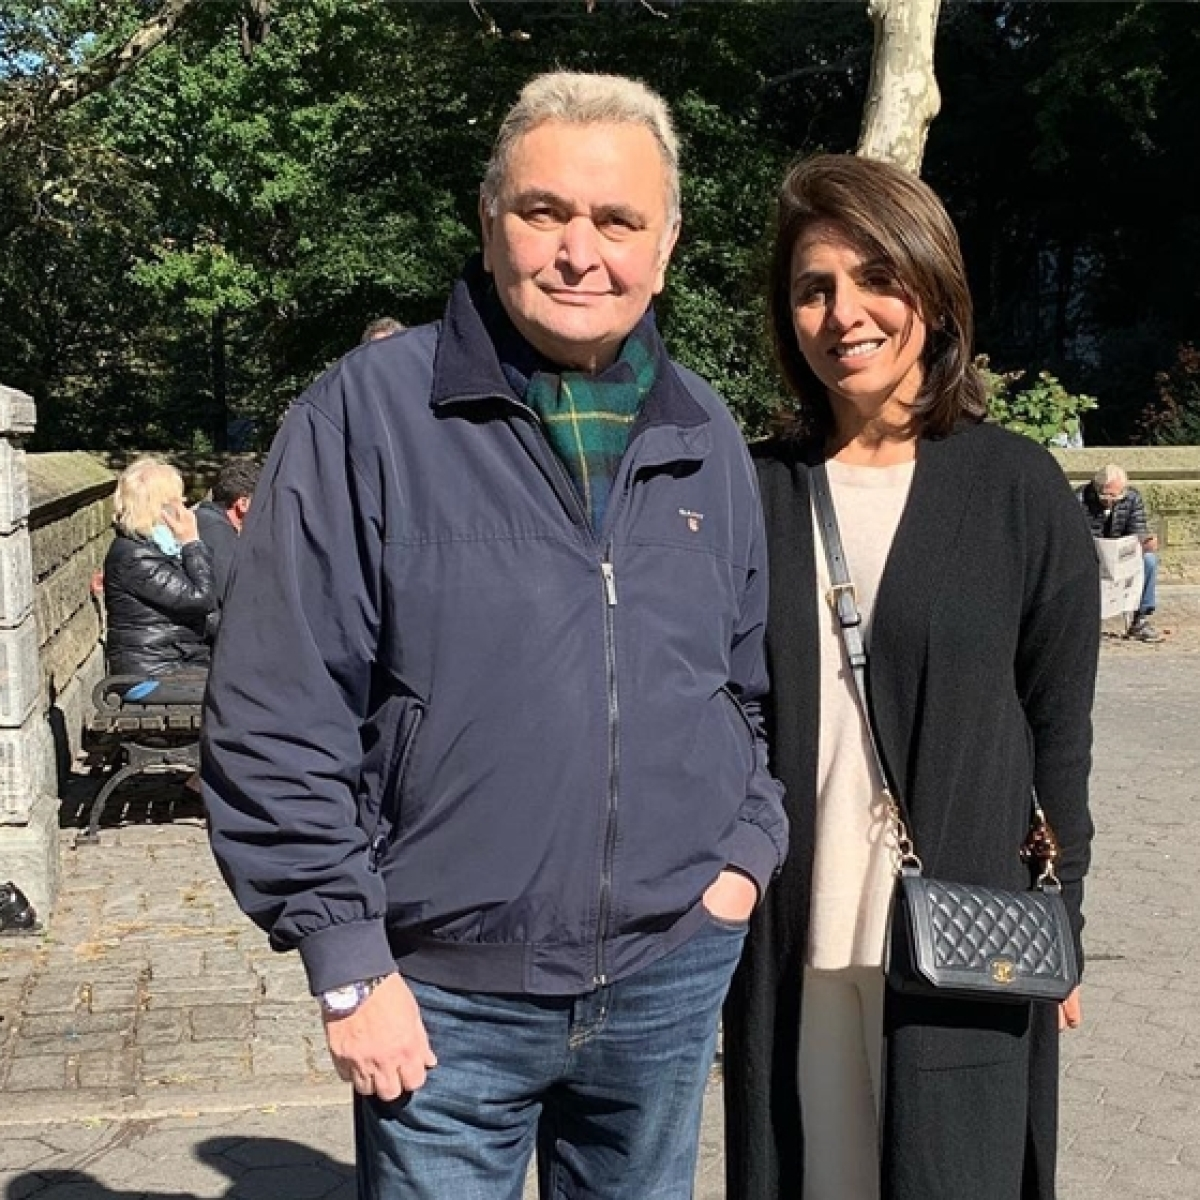 Rishi Kapoor and Neetu get a visit from Juhi Chawla while in New York